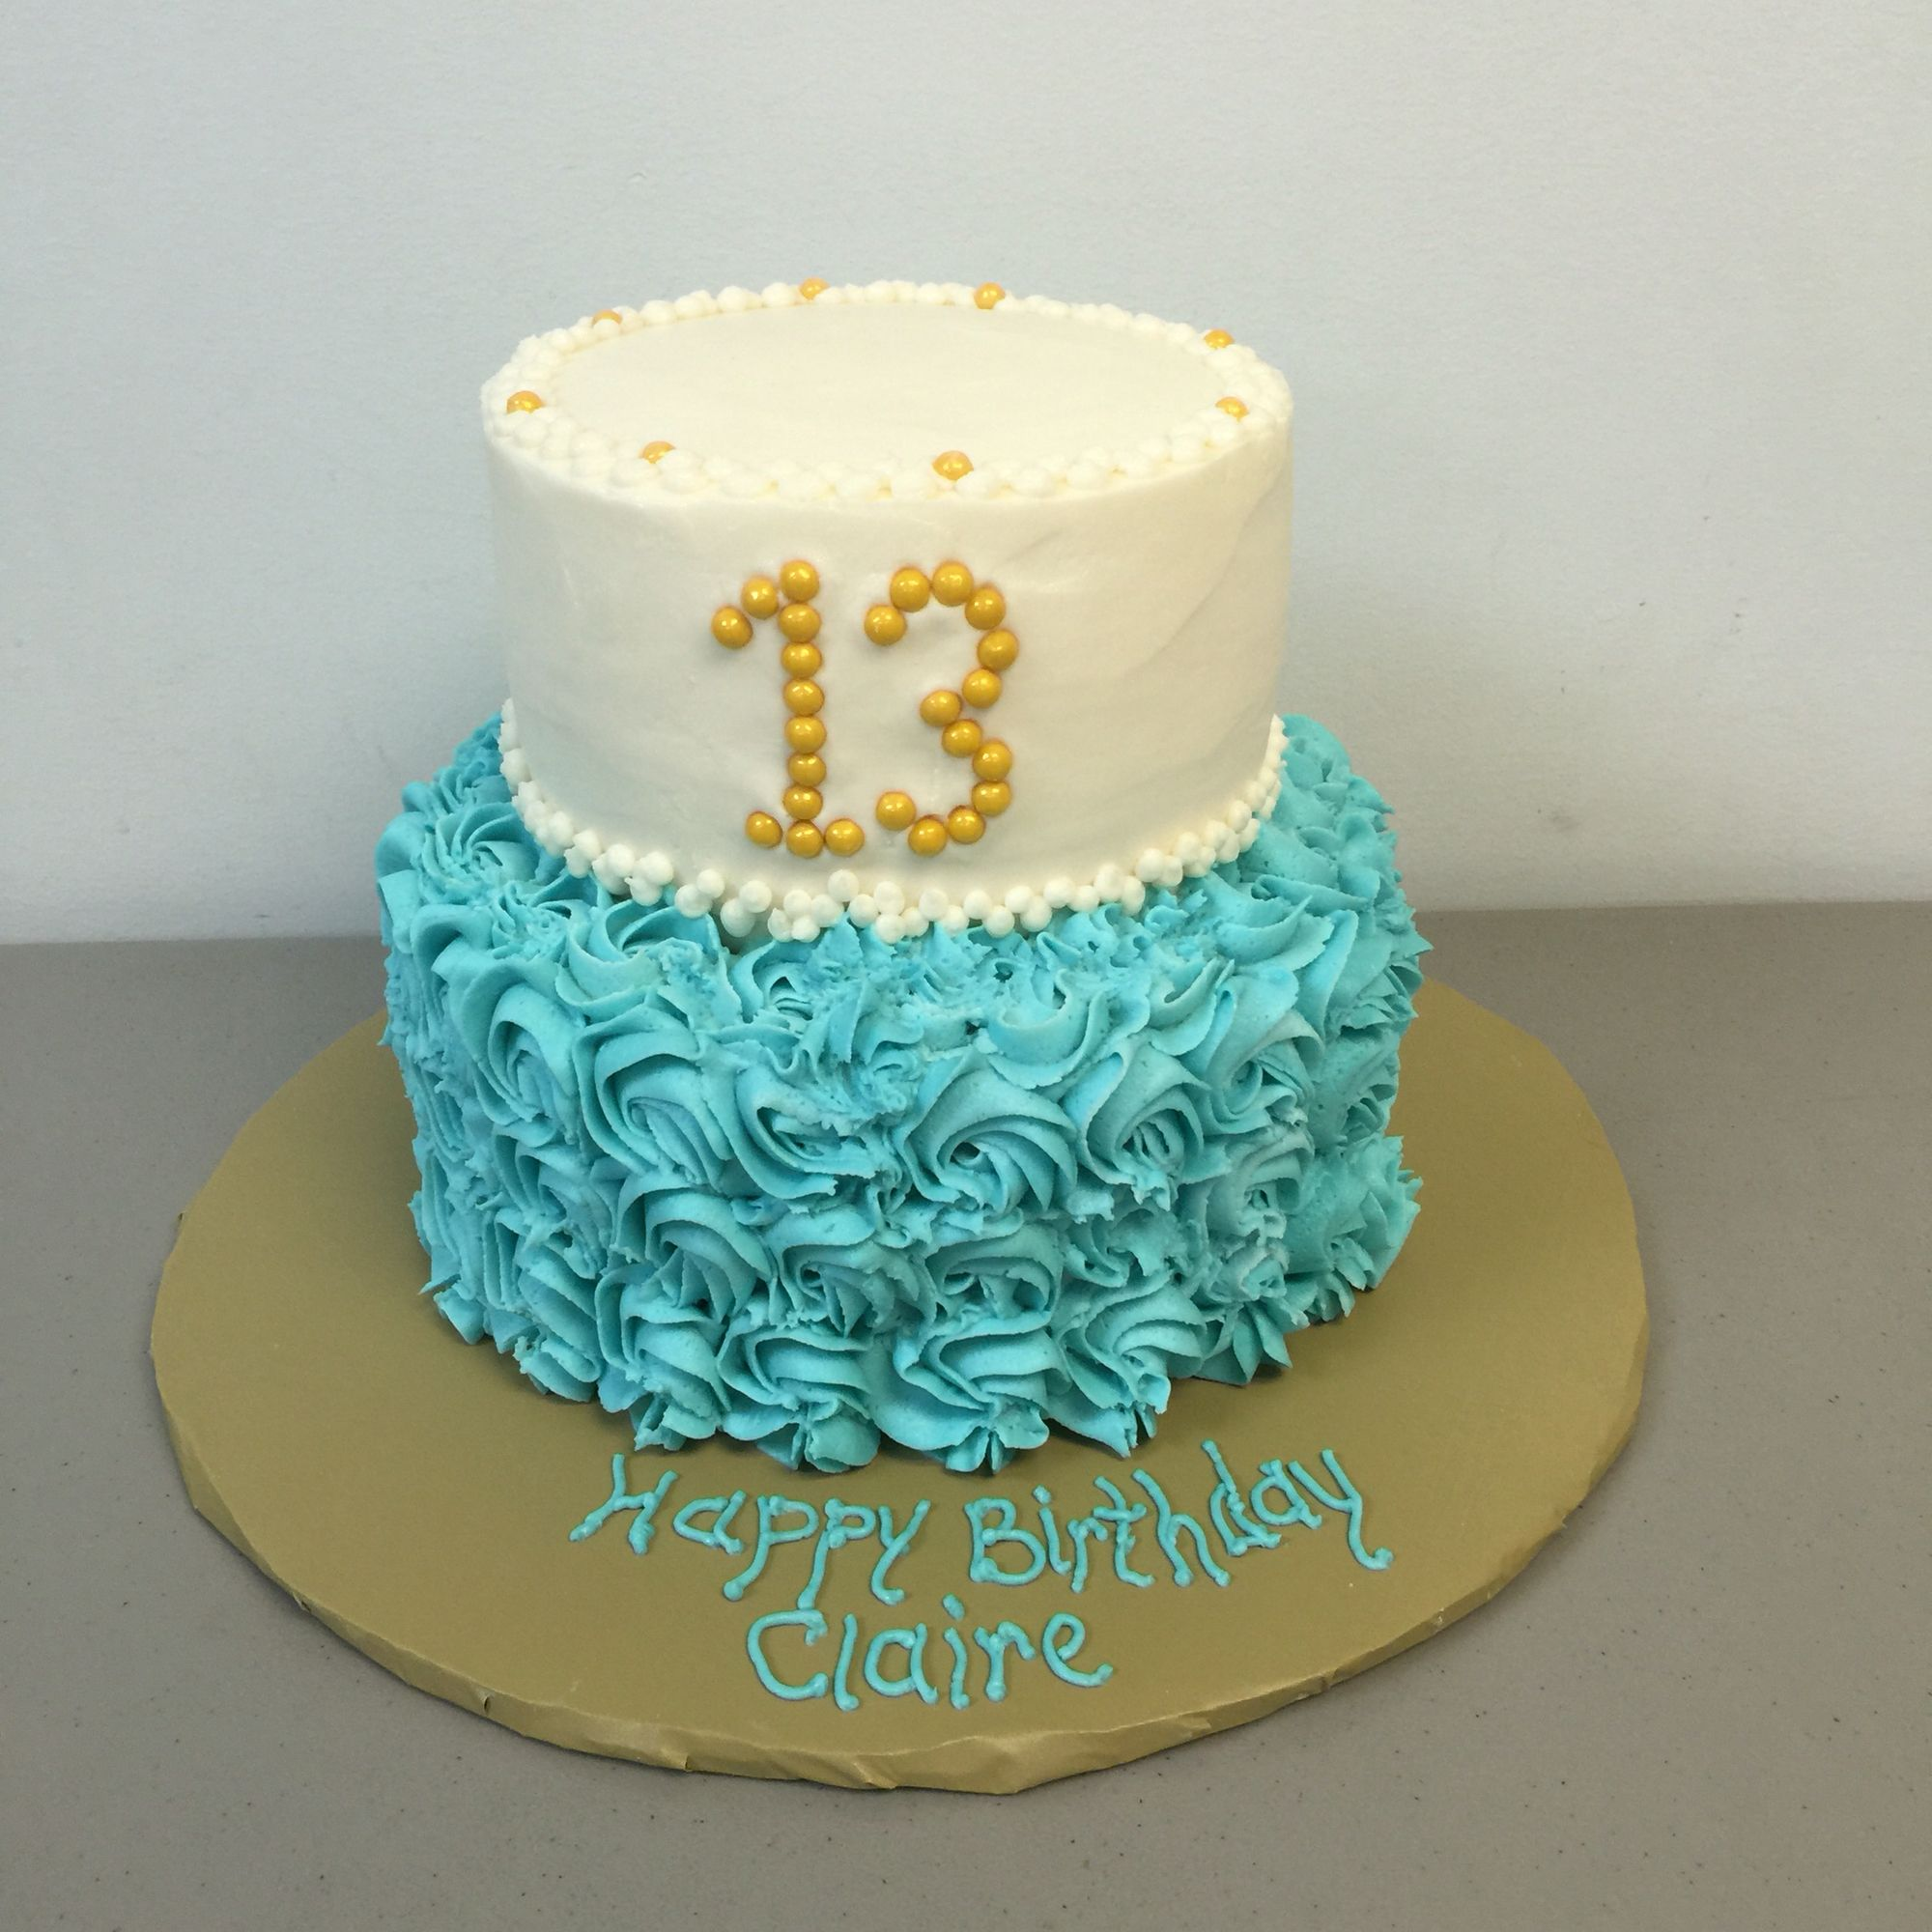 13 Year Old Birthday Cake With Images 13th Birthday Cake